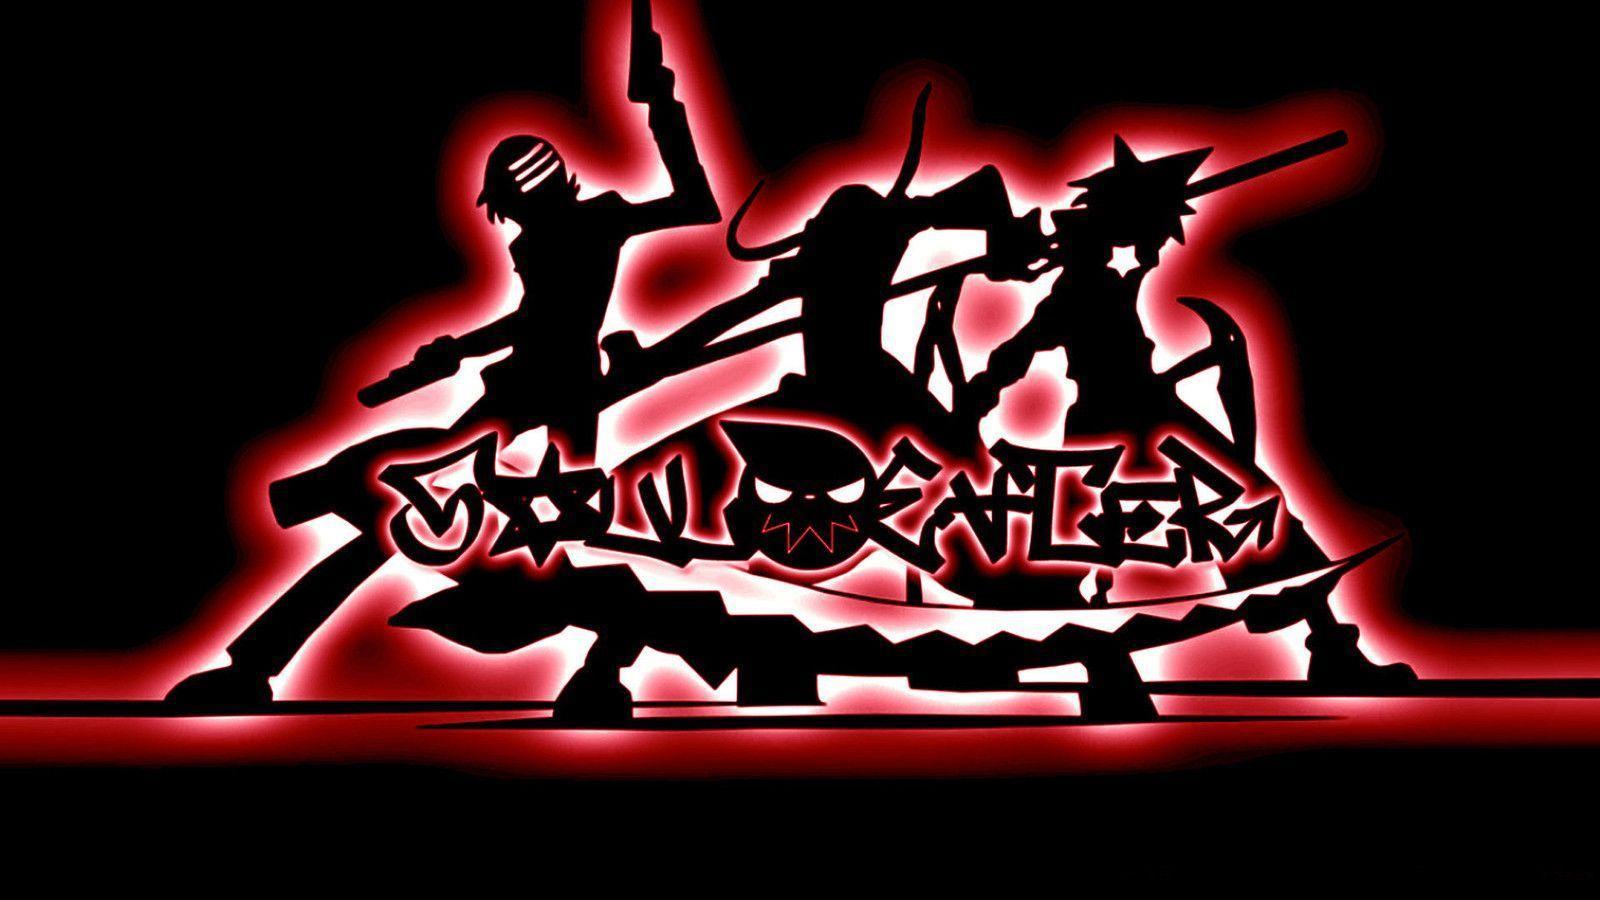 Soul eater hd wallpapers wallpaper cave image 1600x1200 soul eater full hd wallpaperg voltagebd Images